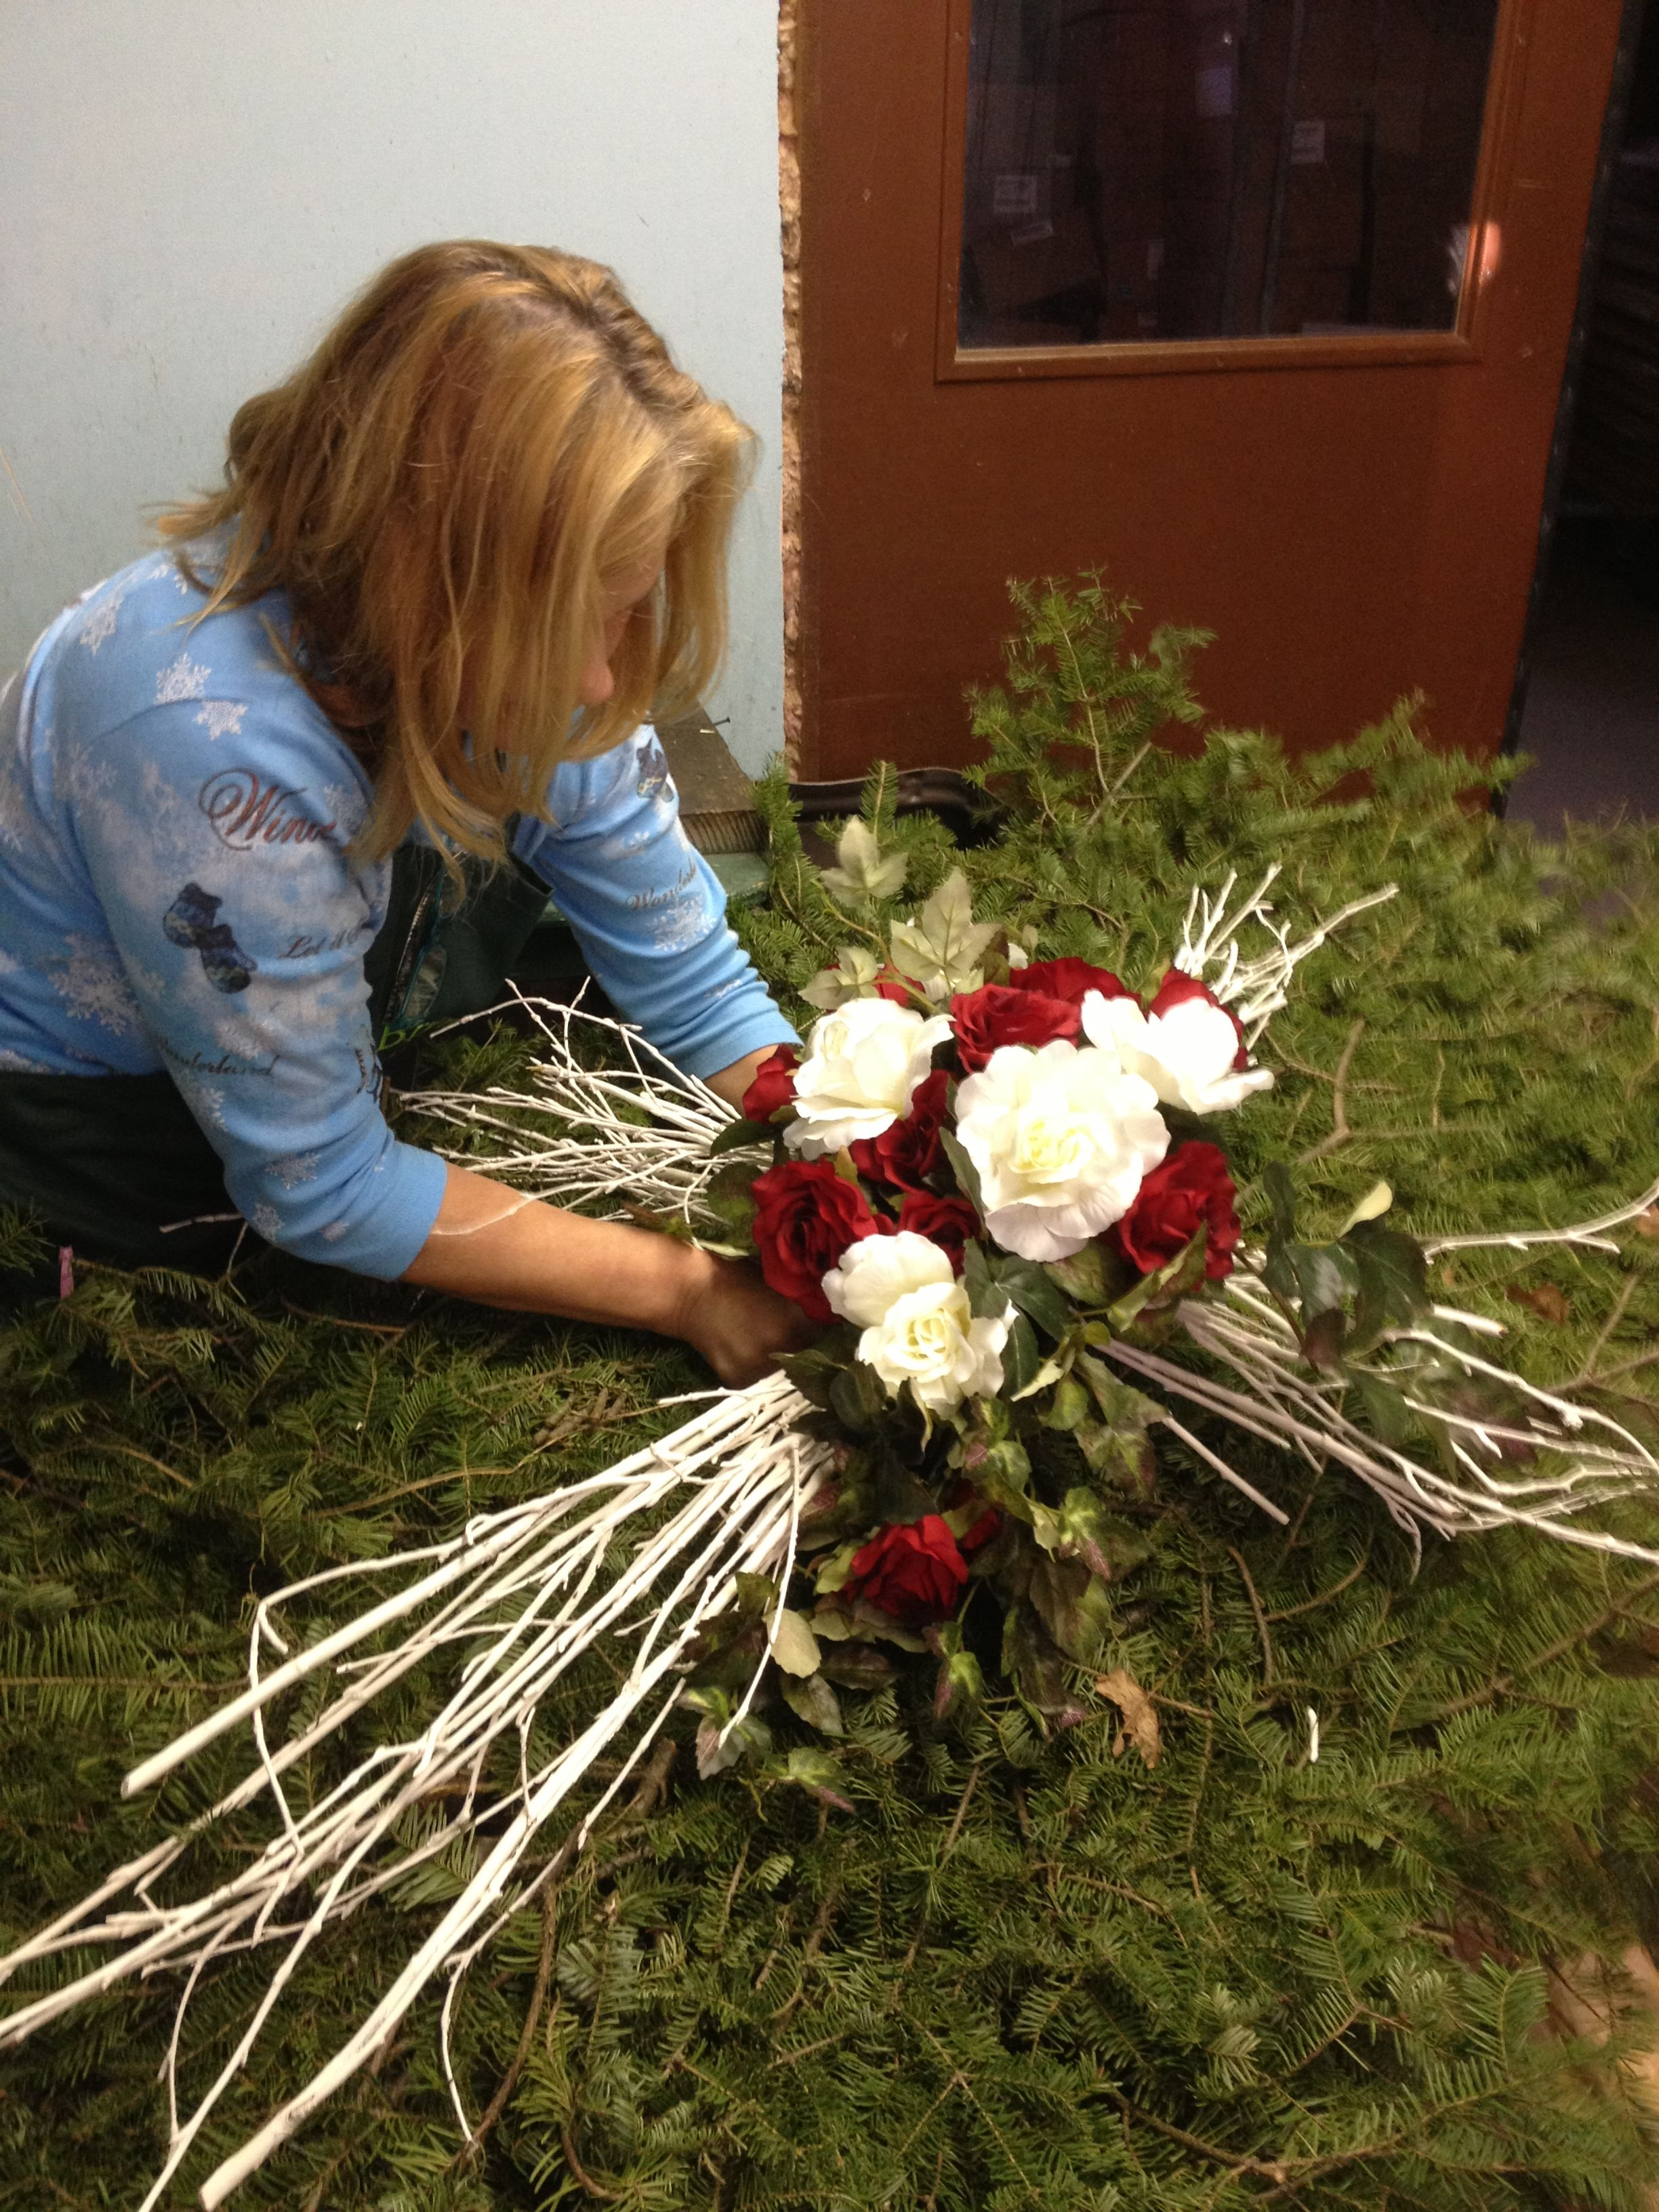 Fibre optic christmas flowers and xmas flowers - Find This Pin And More On Funeral